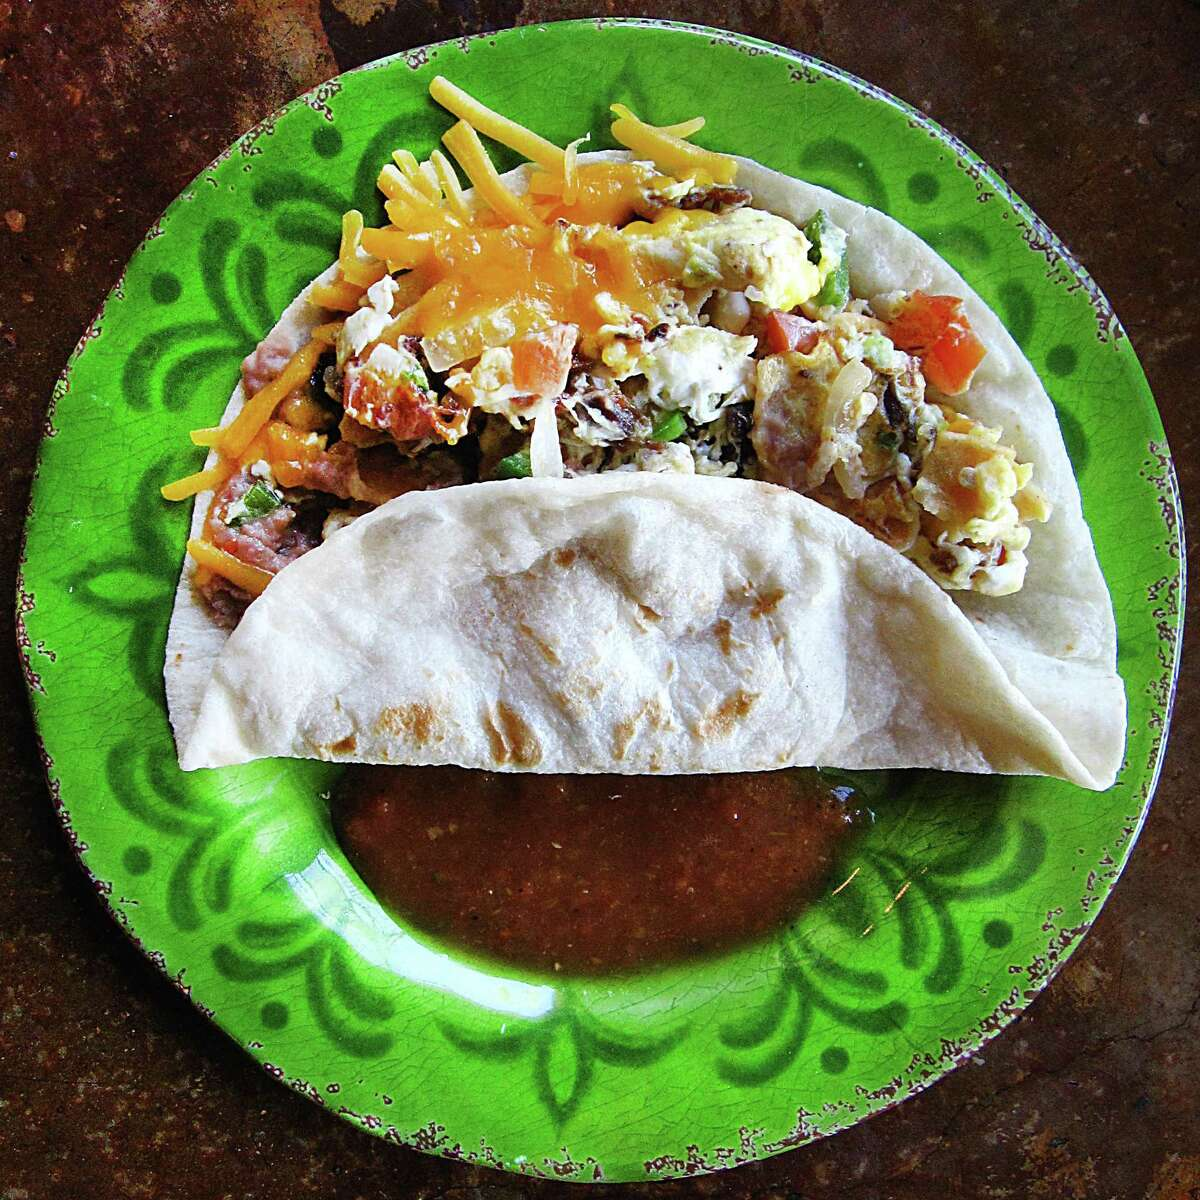 Taco of the Week: Macha Quiles taco with machacado, eggs, beans, chilaquiles and cheese on a handmade flour tortilla from Sazón Mexican Cafe.